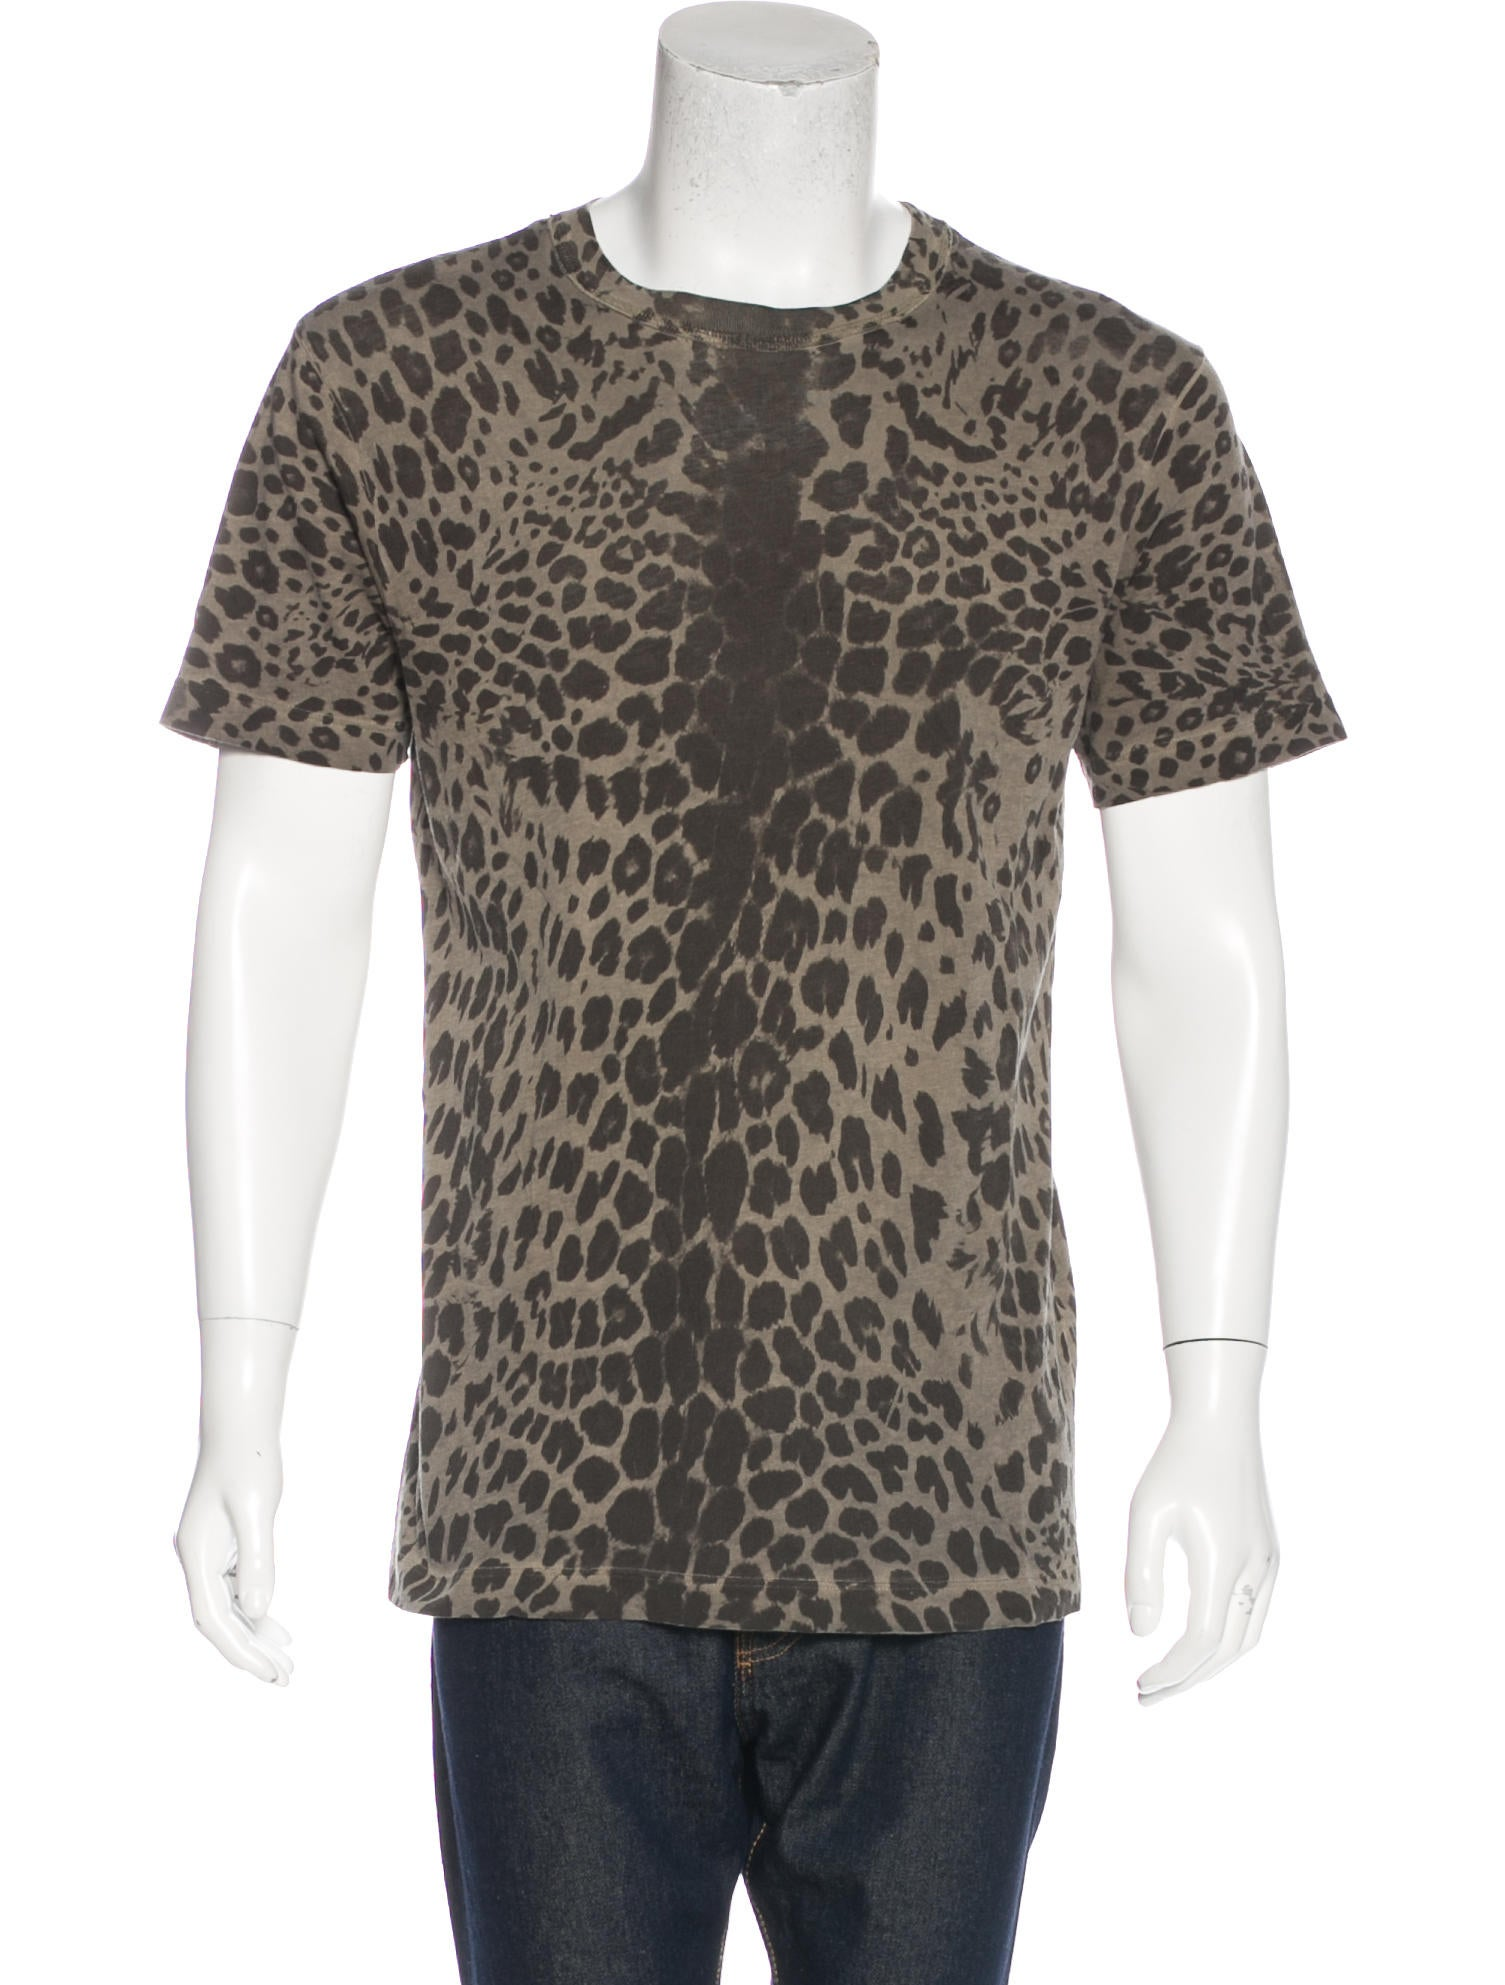 pierre balmain cheetah print t shirt clothing w1p21495 the realreal. Black Bedroom Furniture Sets. Home Design Ideas